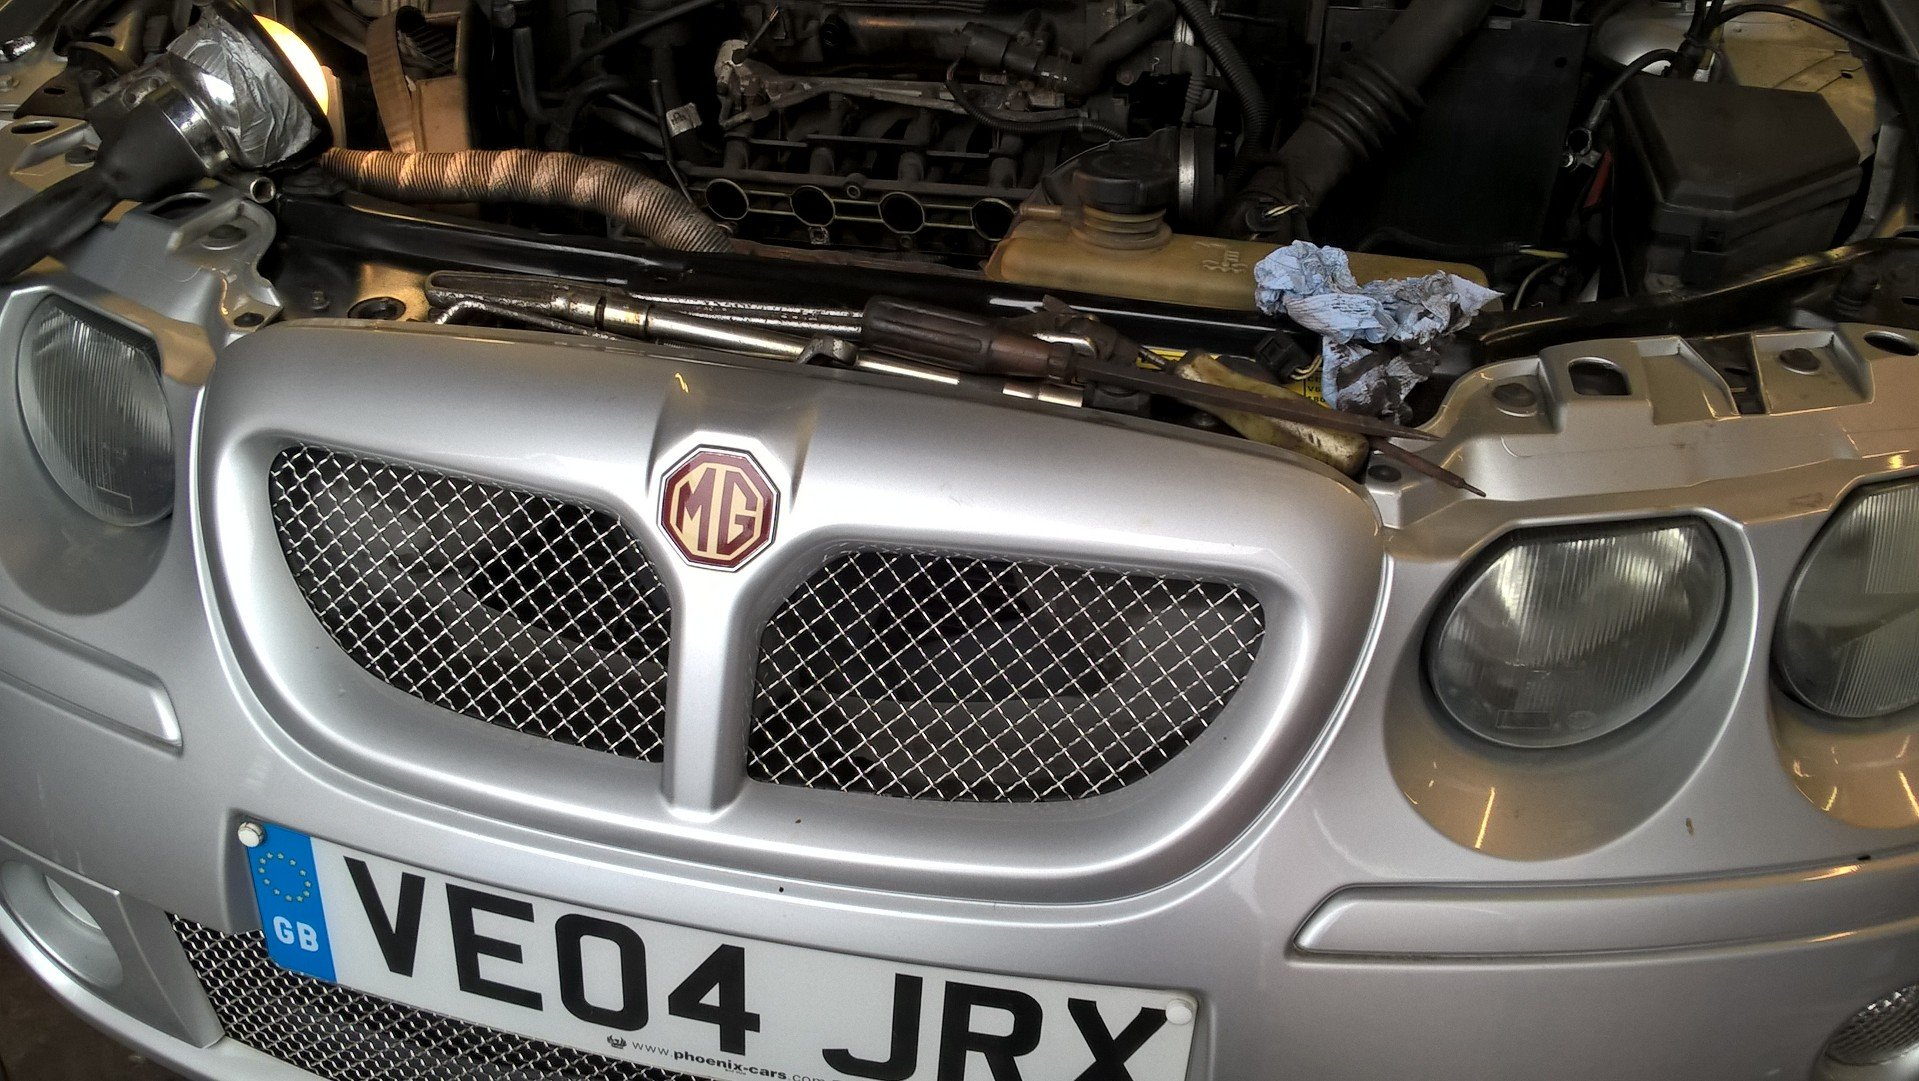 2004 mg zt 1.8t 160+ saloon For Sale (picture 5 of 6)